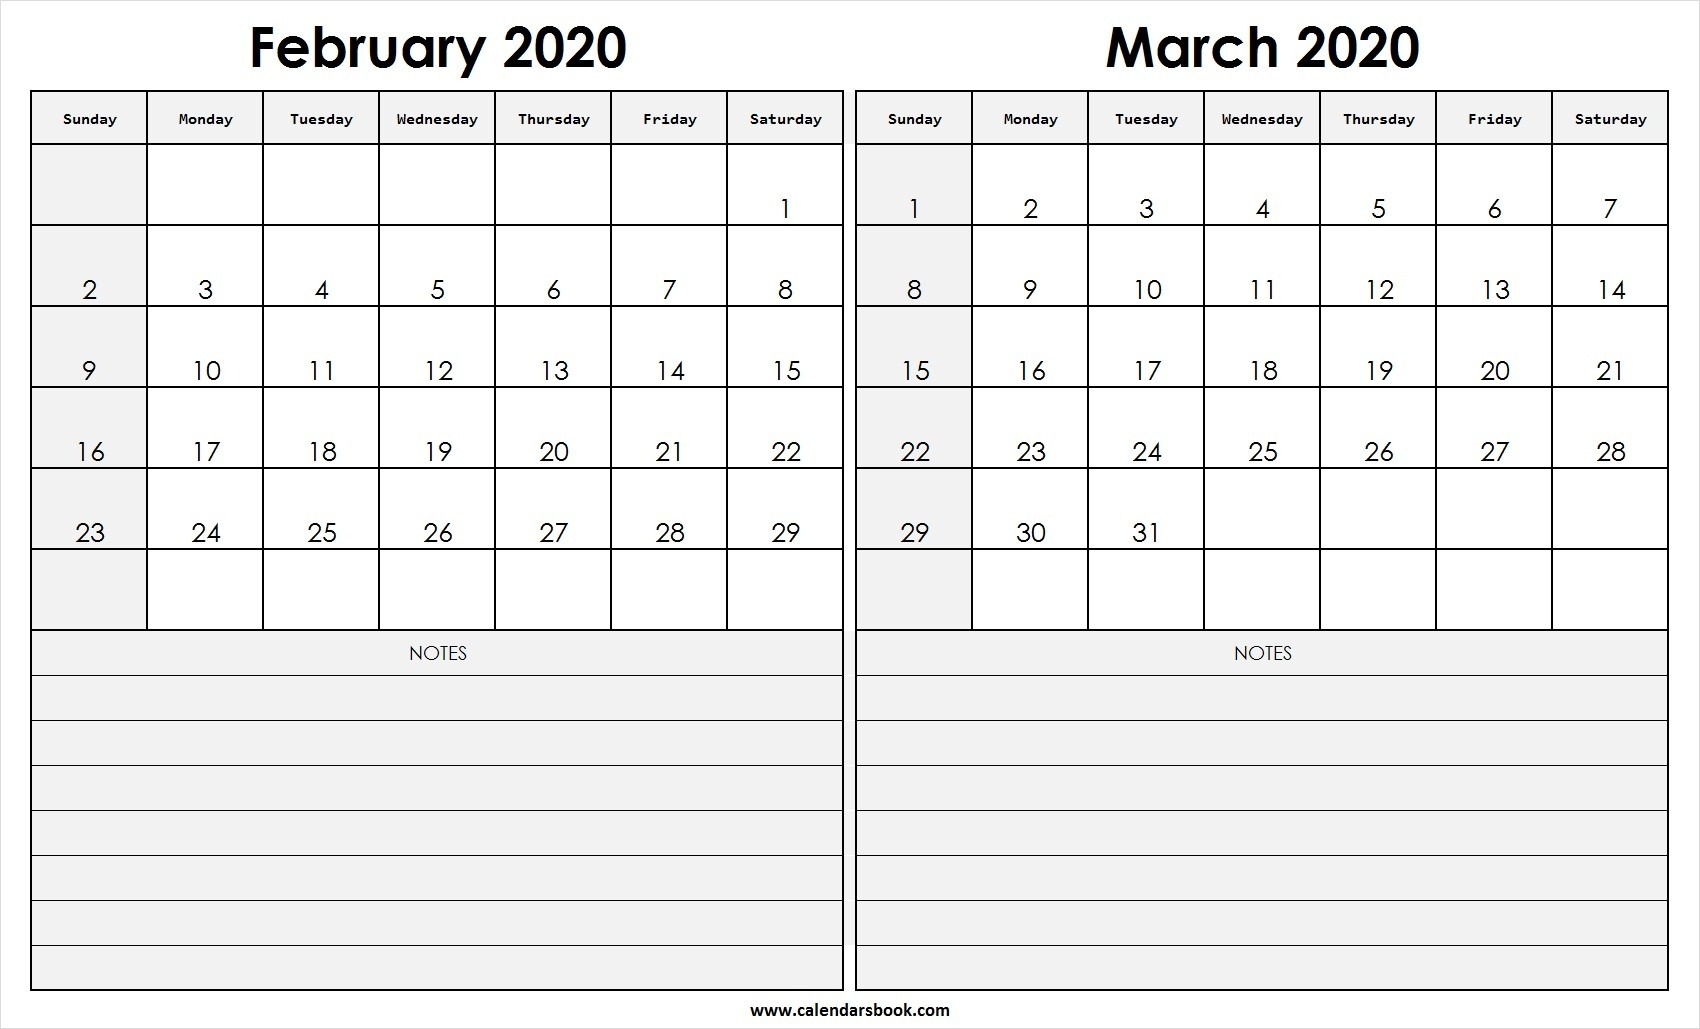 Print February March 2020 Calendar Template | 2 Month Calendar-2020 Calendar January February March